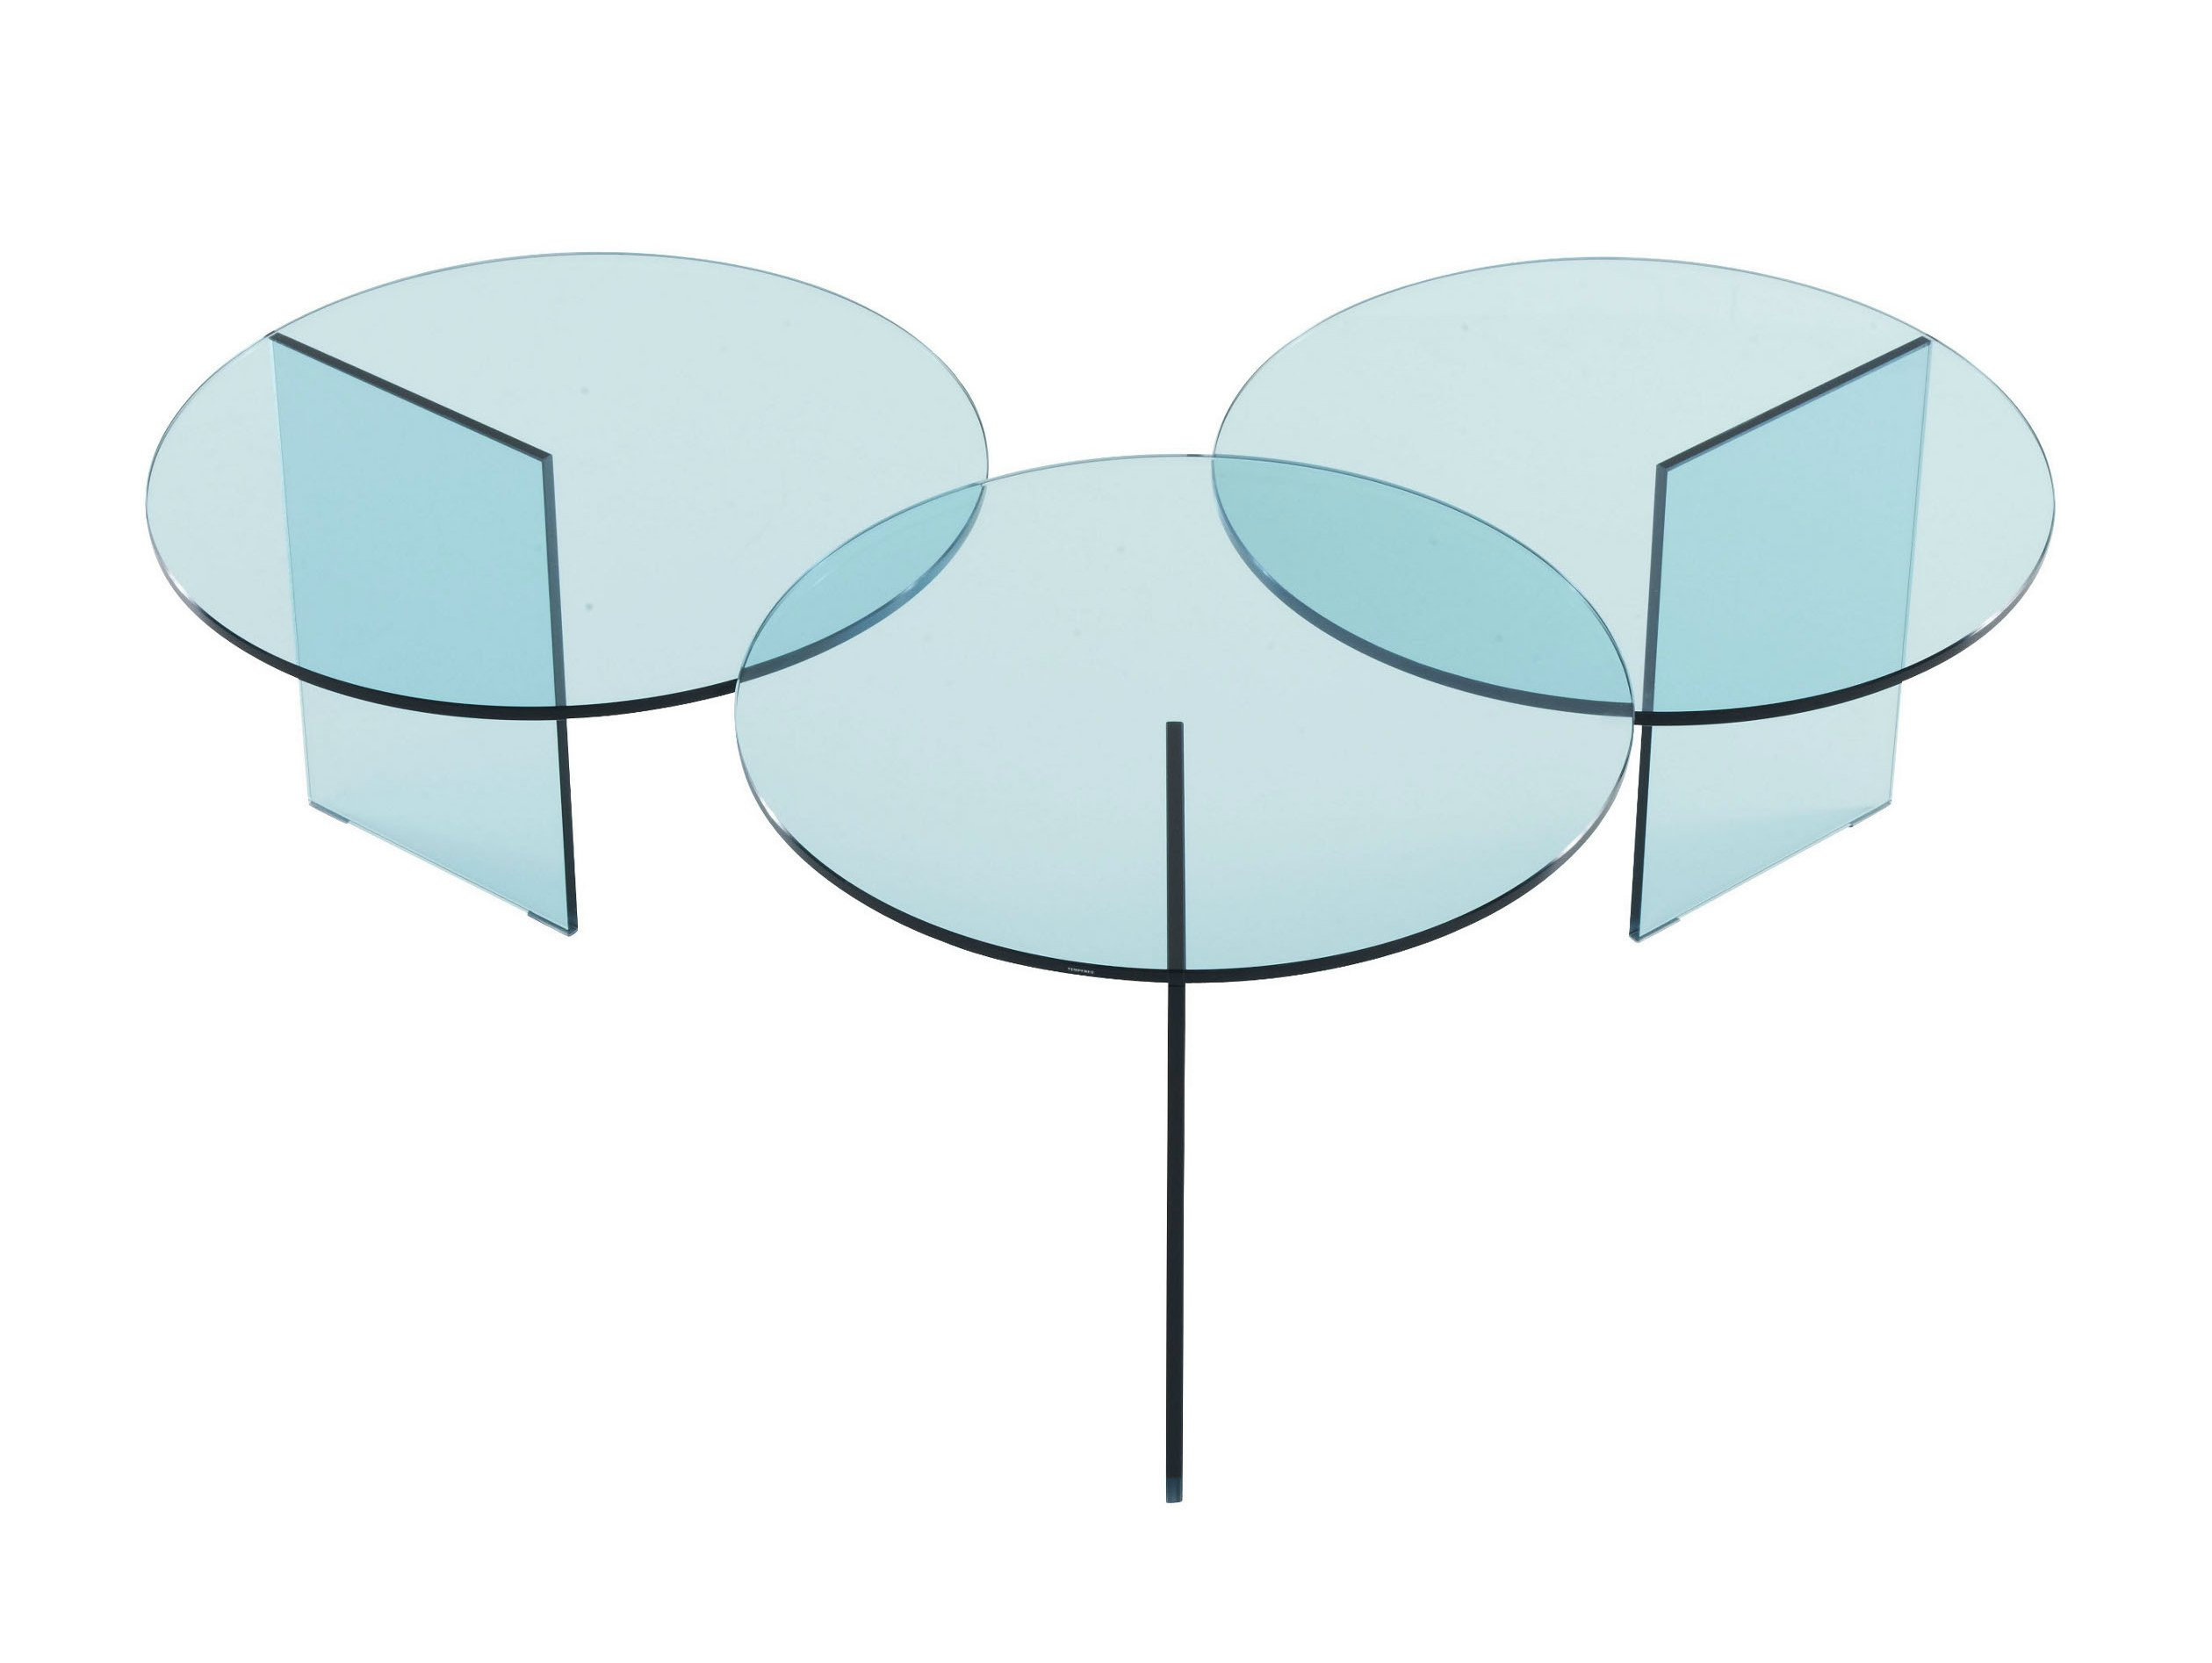 Table basse ronde en verre tremp aoyama by roset italia - Table basse ronde en verre design ...